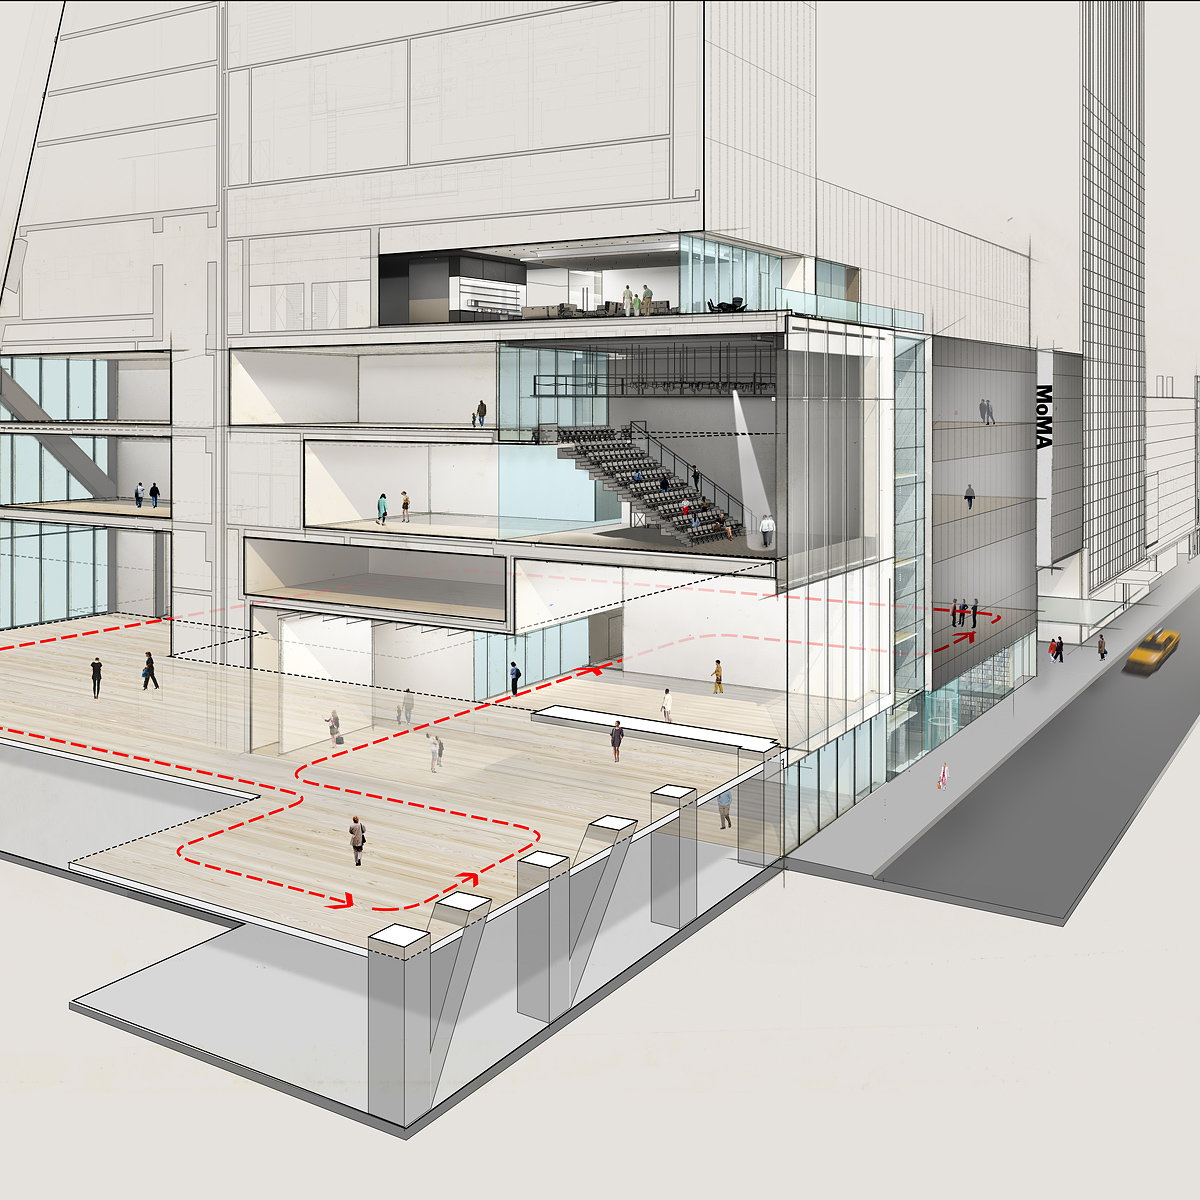 MoMA Completes First Phase of Renovation and Reveals Final Expansion Design